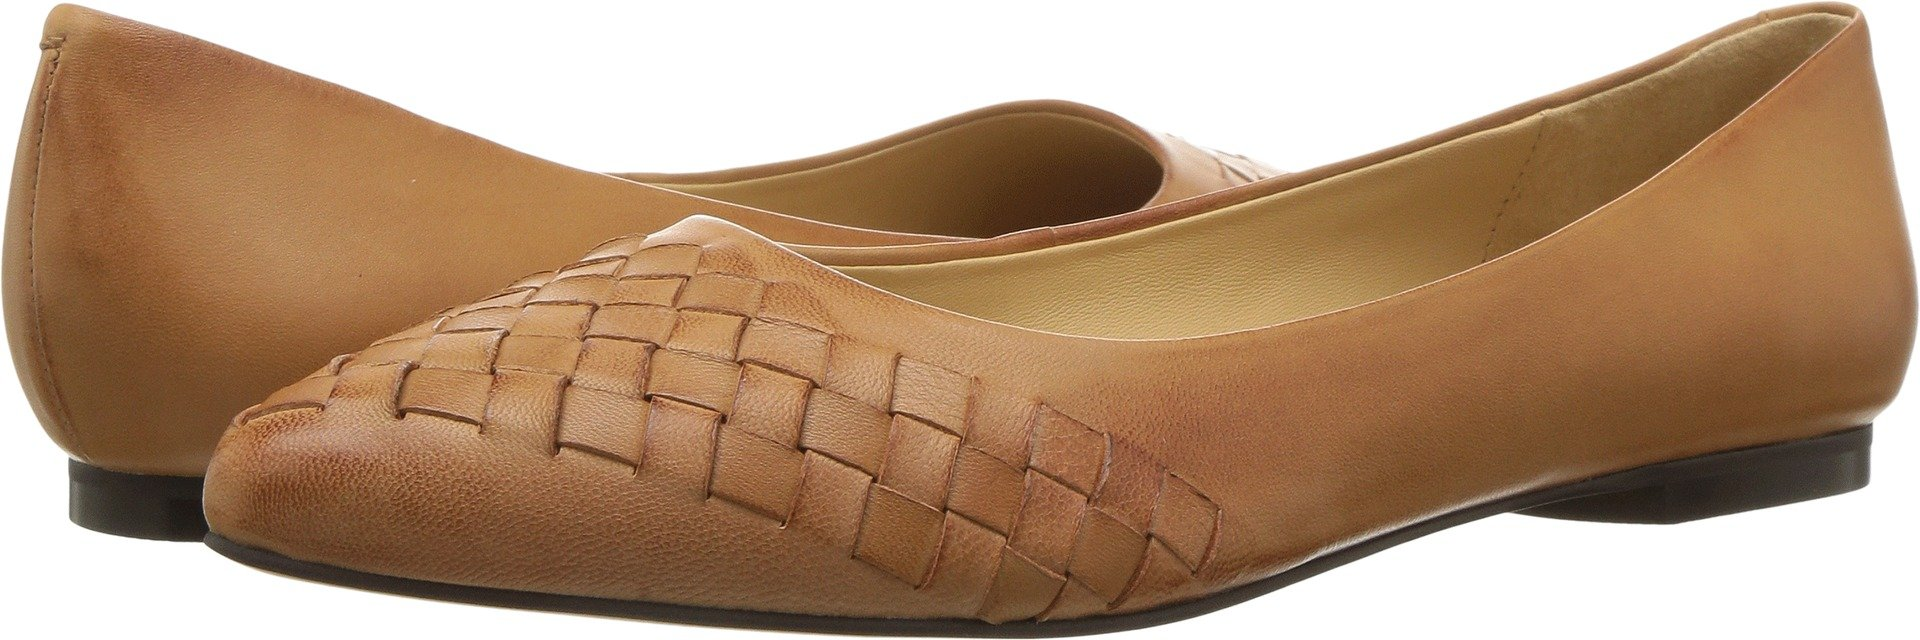 Trotters Women's Estee Woven Tan Woven Leather 12 WW US by Trotters